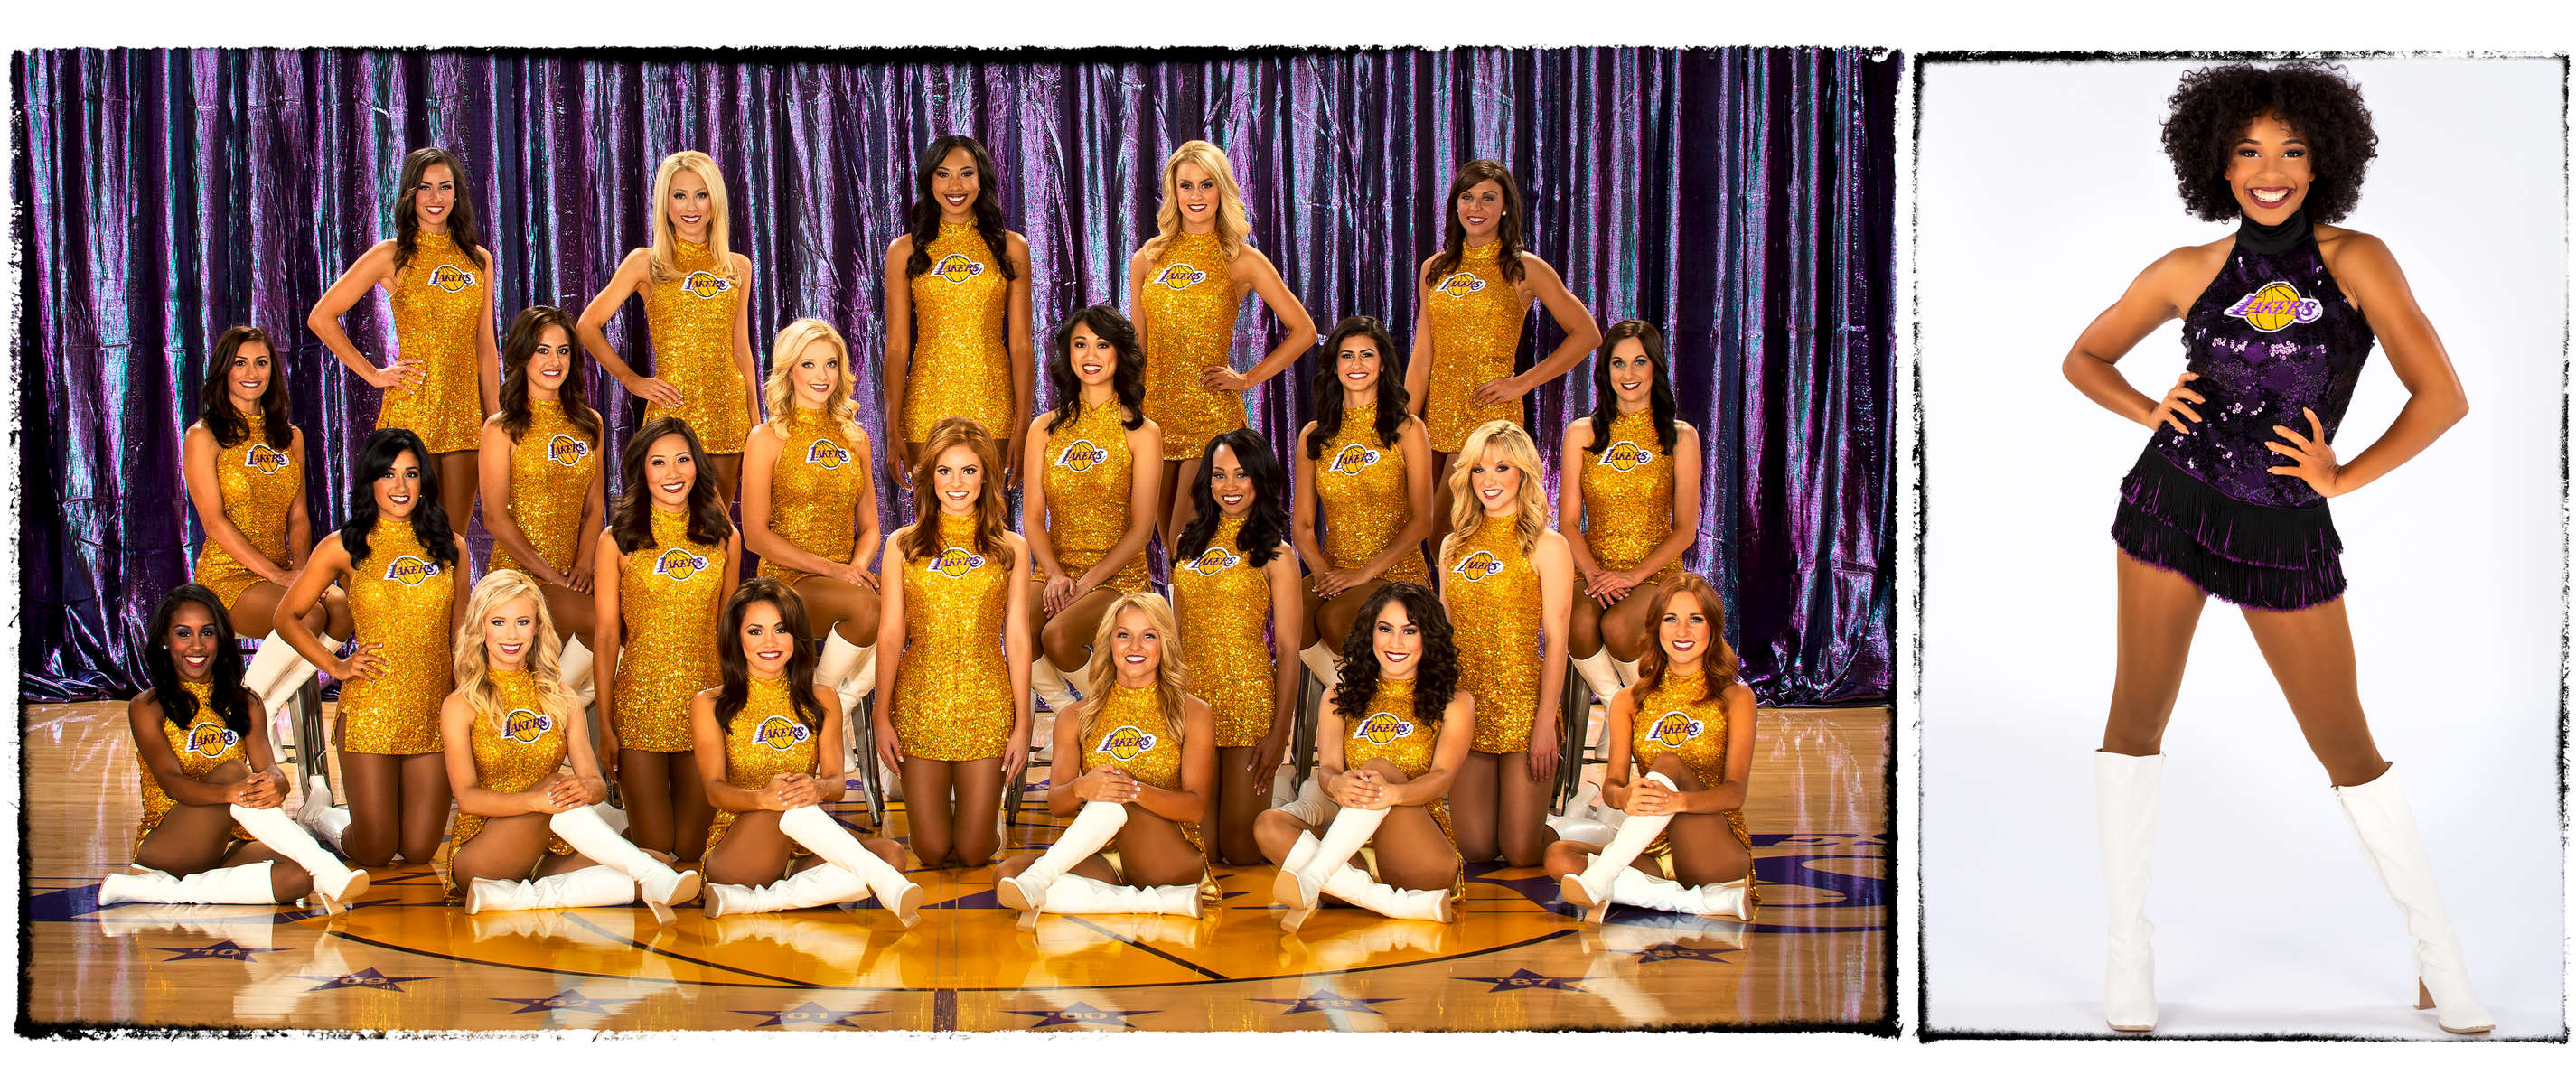 Photographed for The Laker Girls / Bernstein Associates Inc.